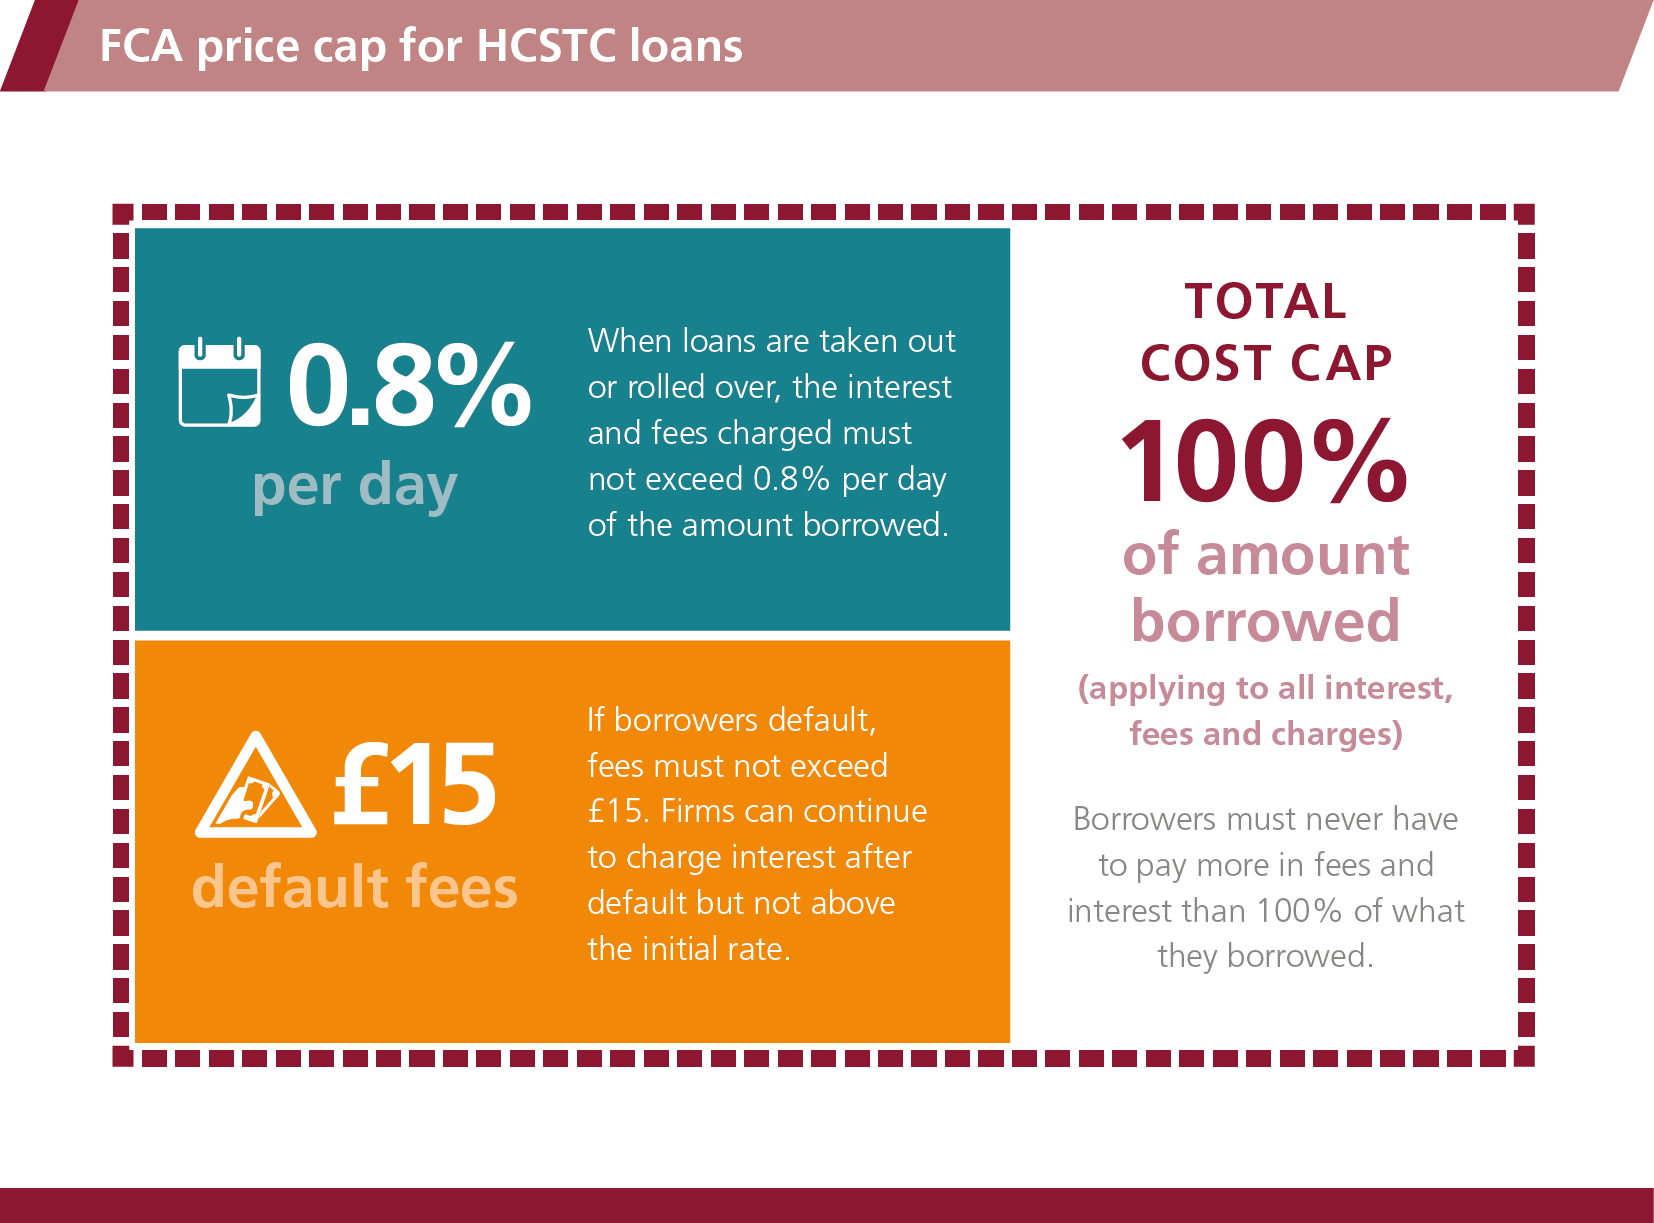 Graphic: FCA price cap for HCSTC loans